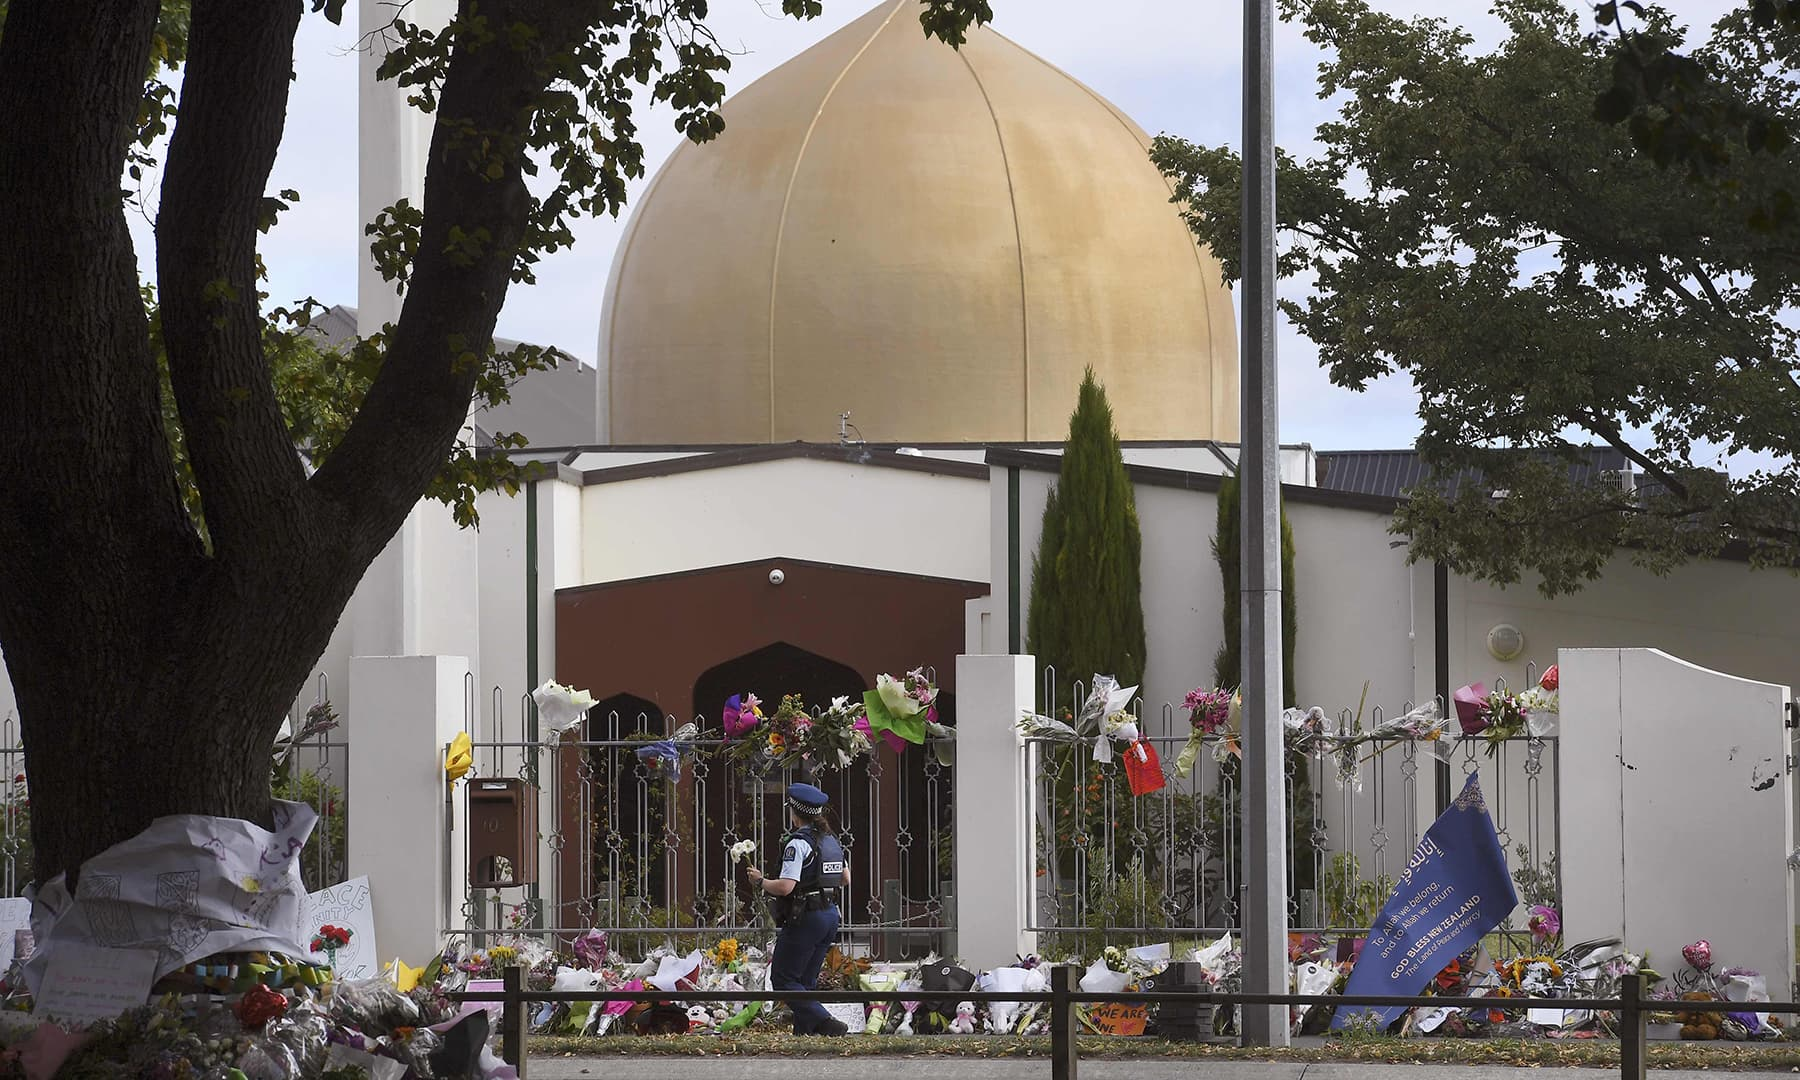 The Al Noor mosque is seen after police removed screens before congregational Friday prayers and two minutes of silence for victims of the twin mosque massacre, at Hagley Park in Christchurch. — AFP